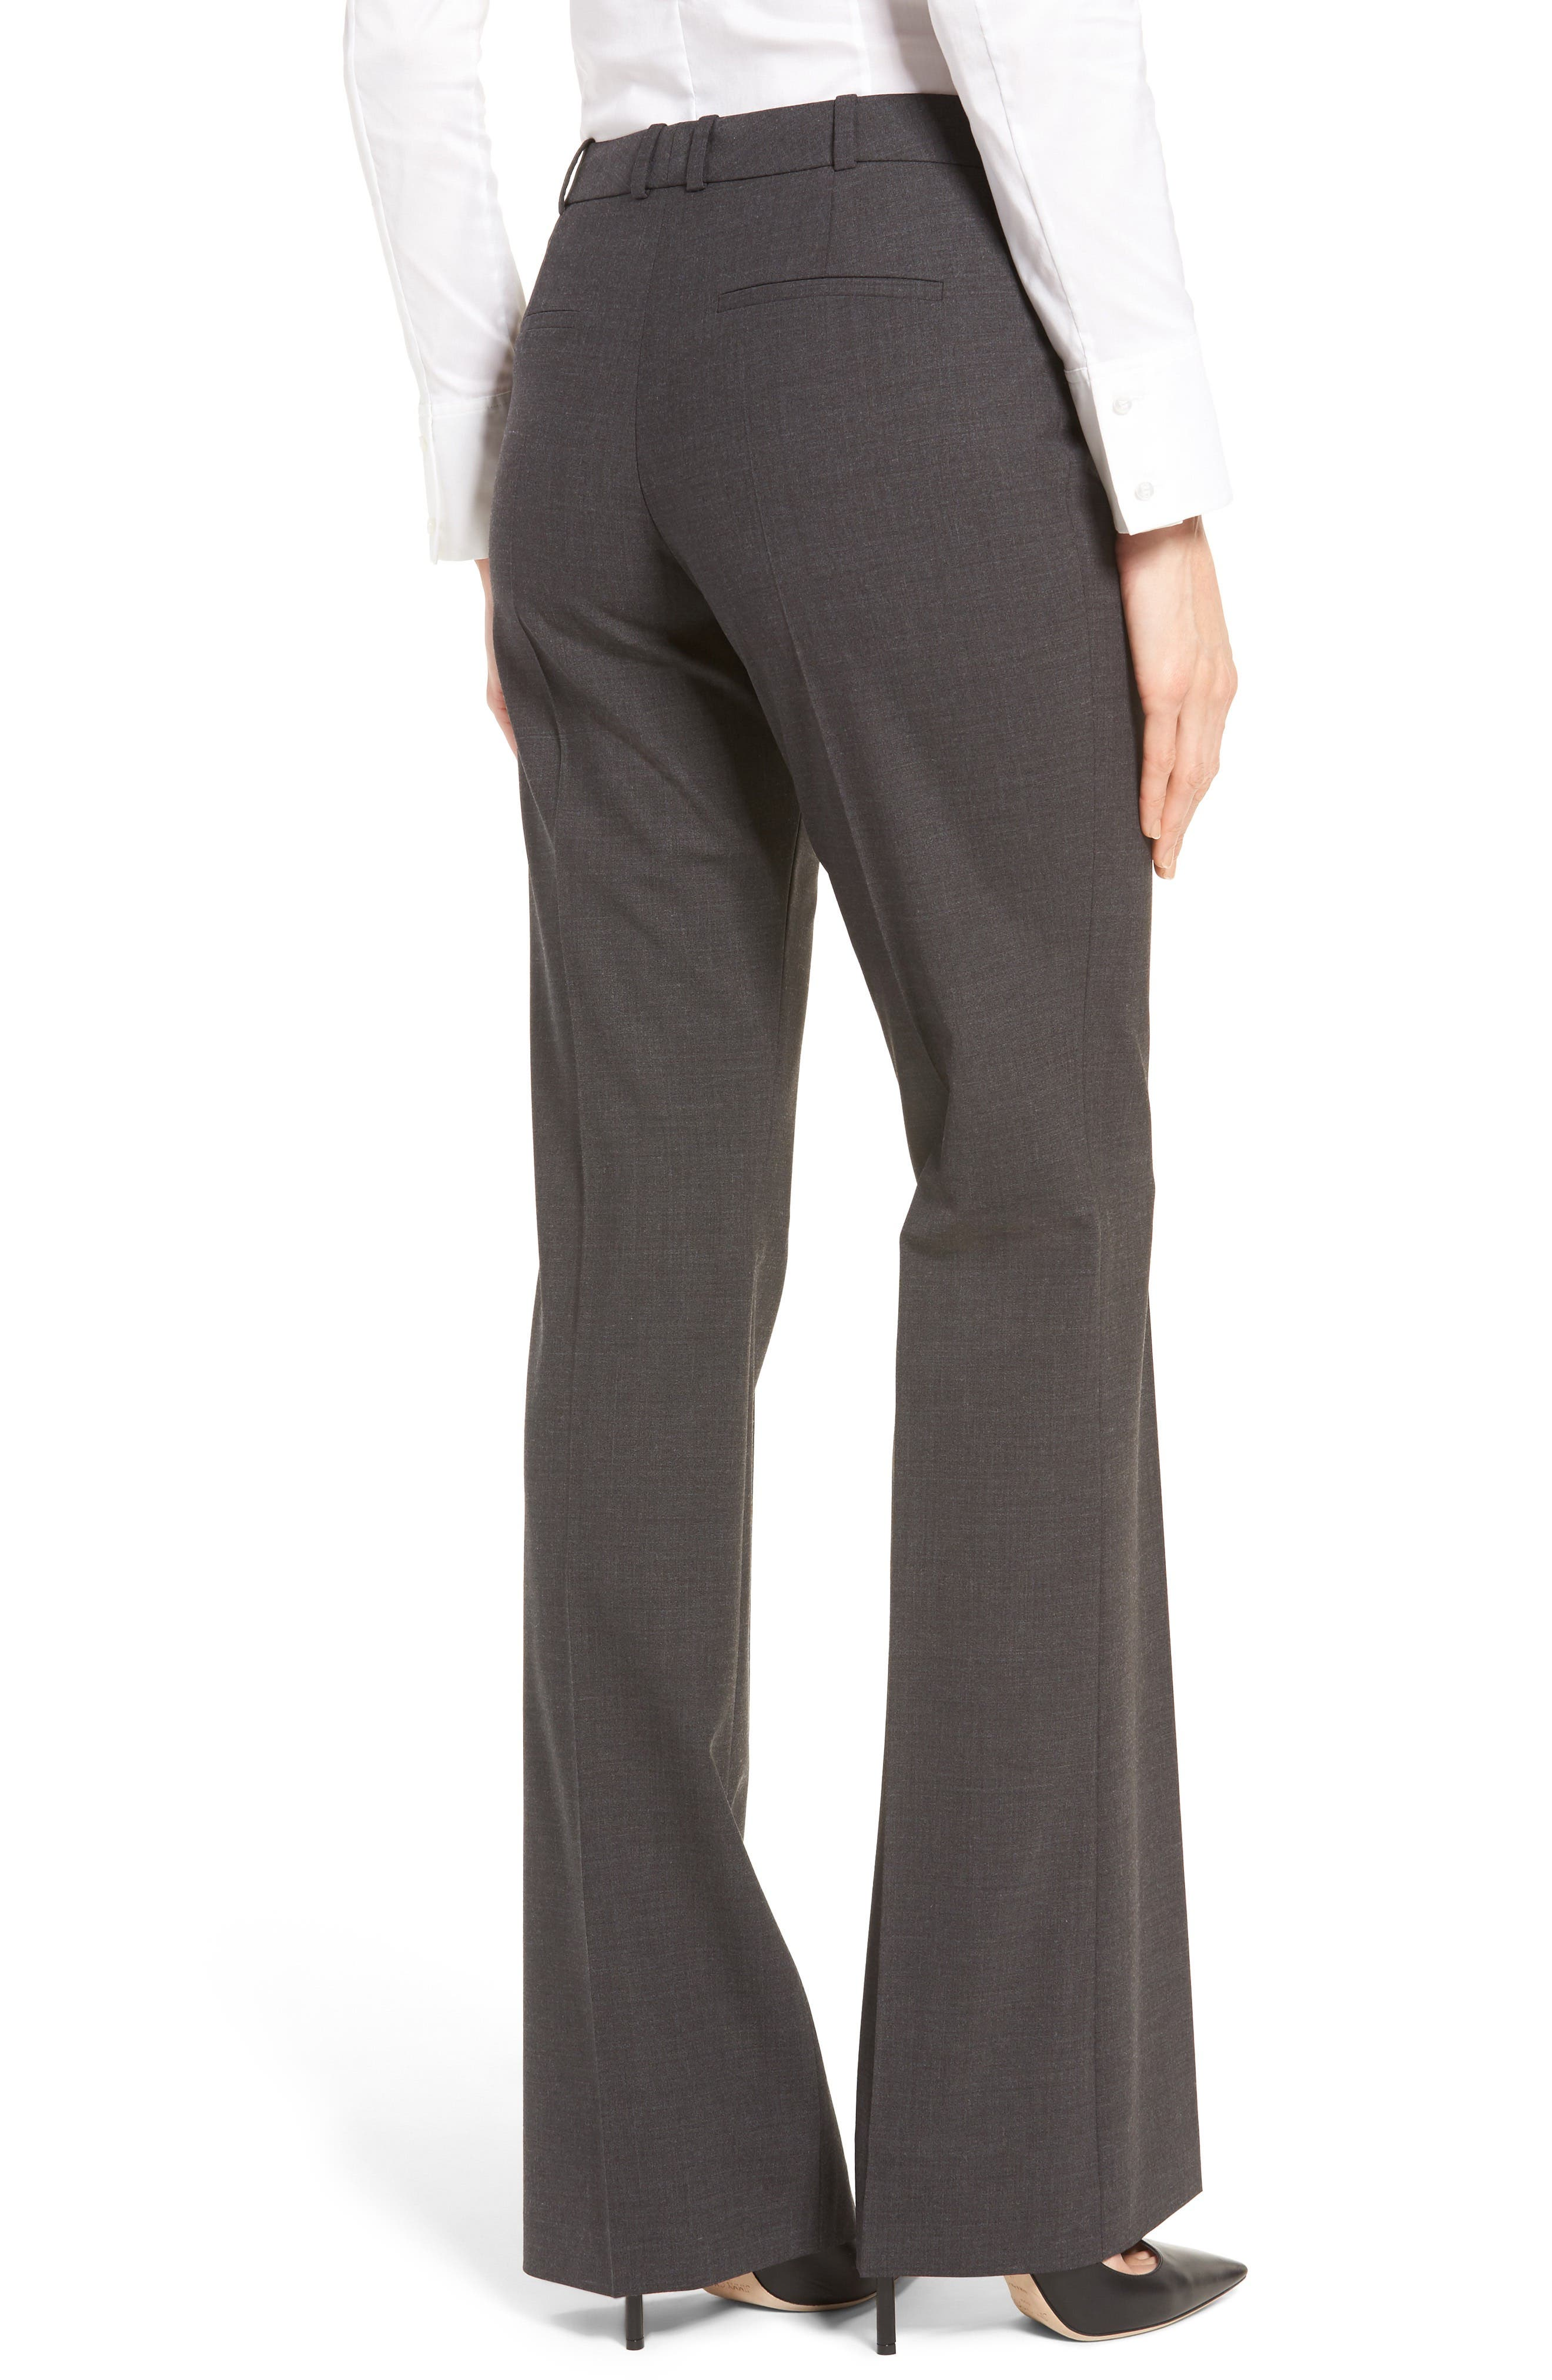 BOSS, Tulea3 Tropical Stretch Wool Trousers, Alternate thumbnail 2, color, CHARCOAL